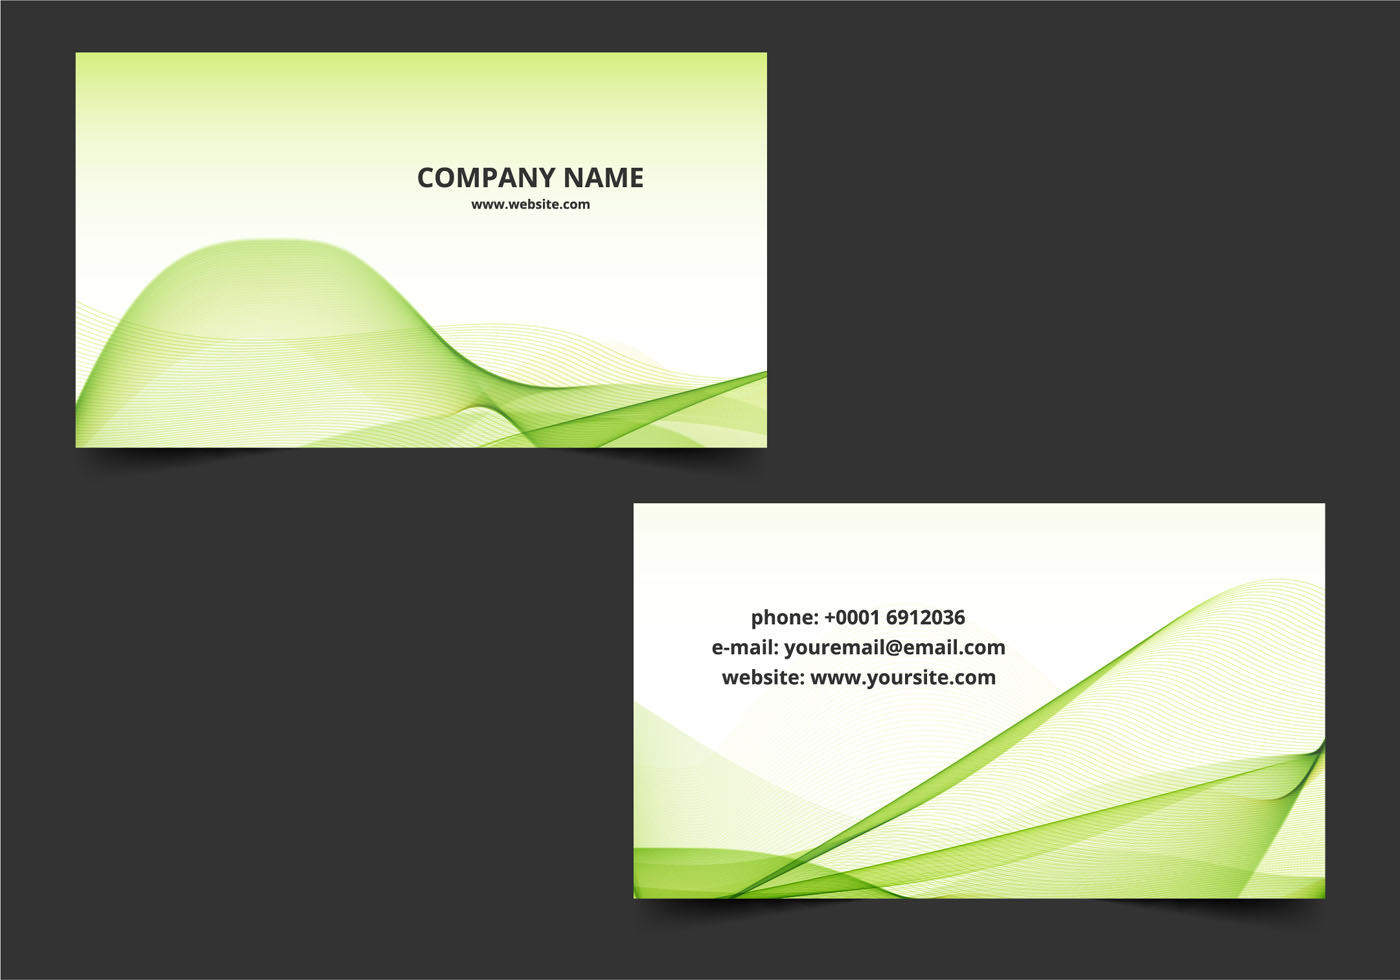 Green business card - Download Free Vector Art, Stock Graphics ...